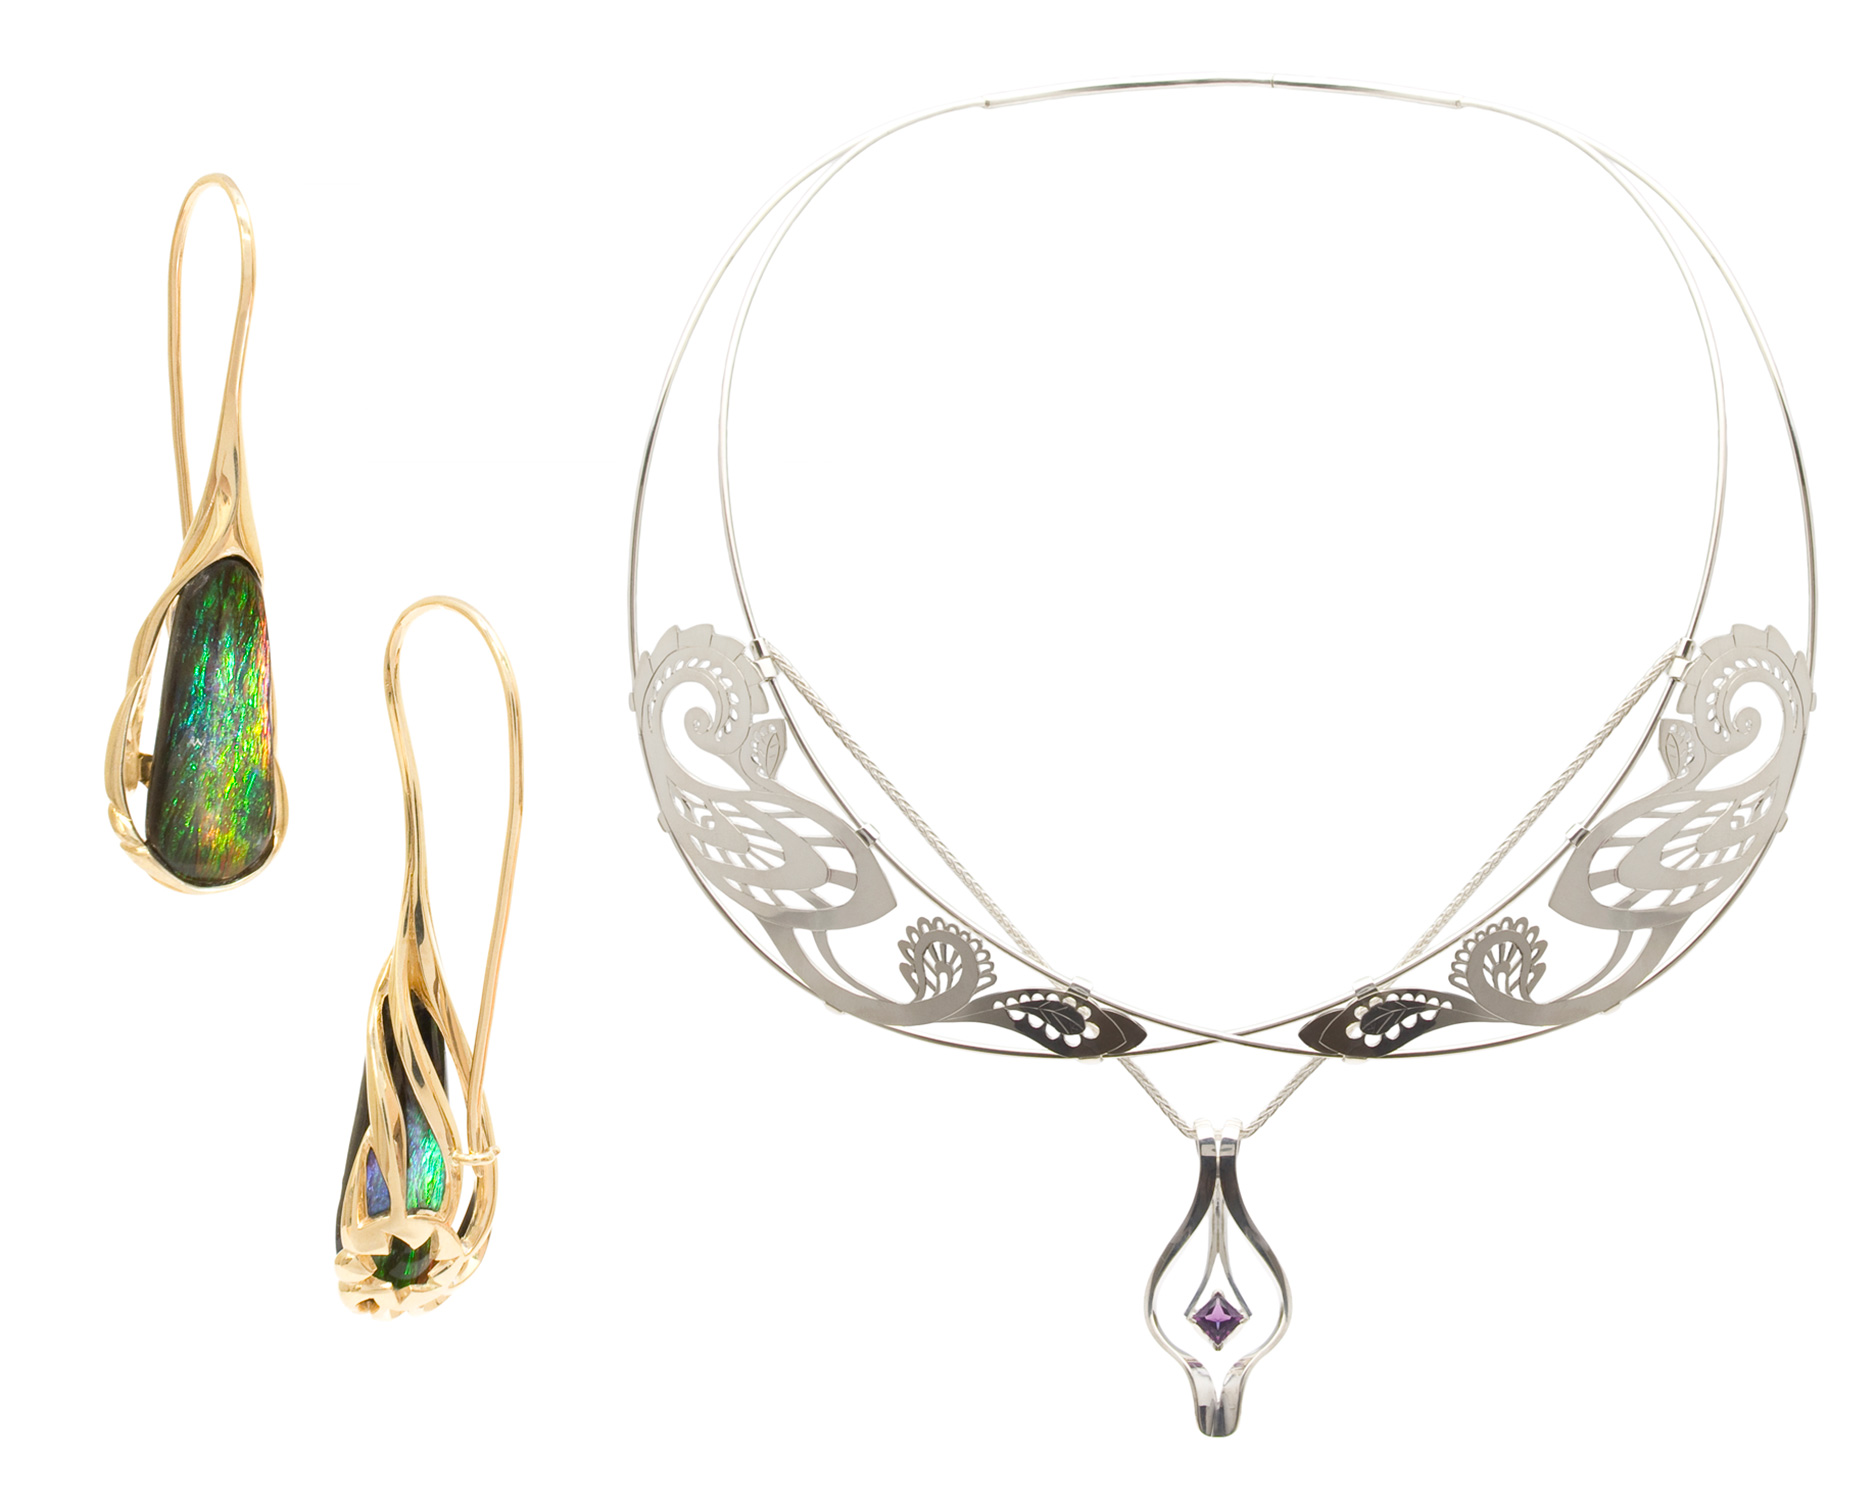 Neckpieces & Earrings